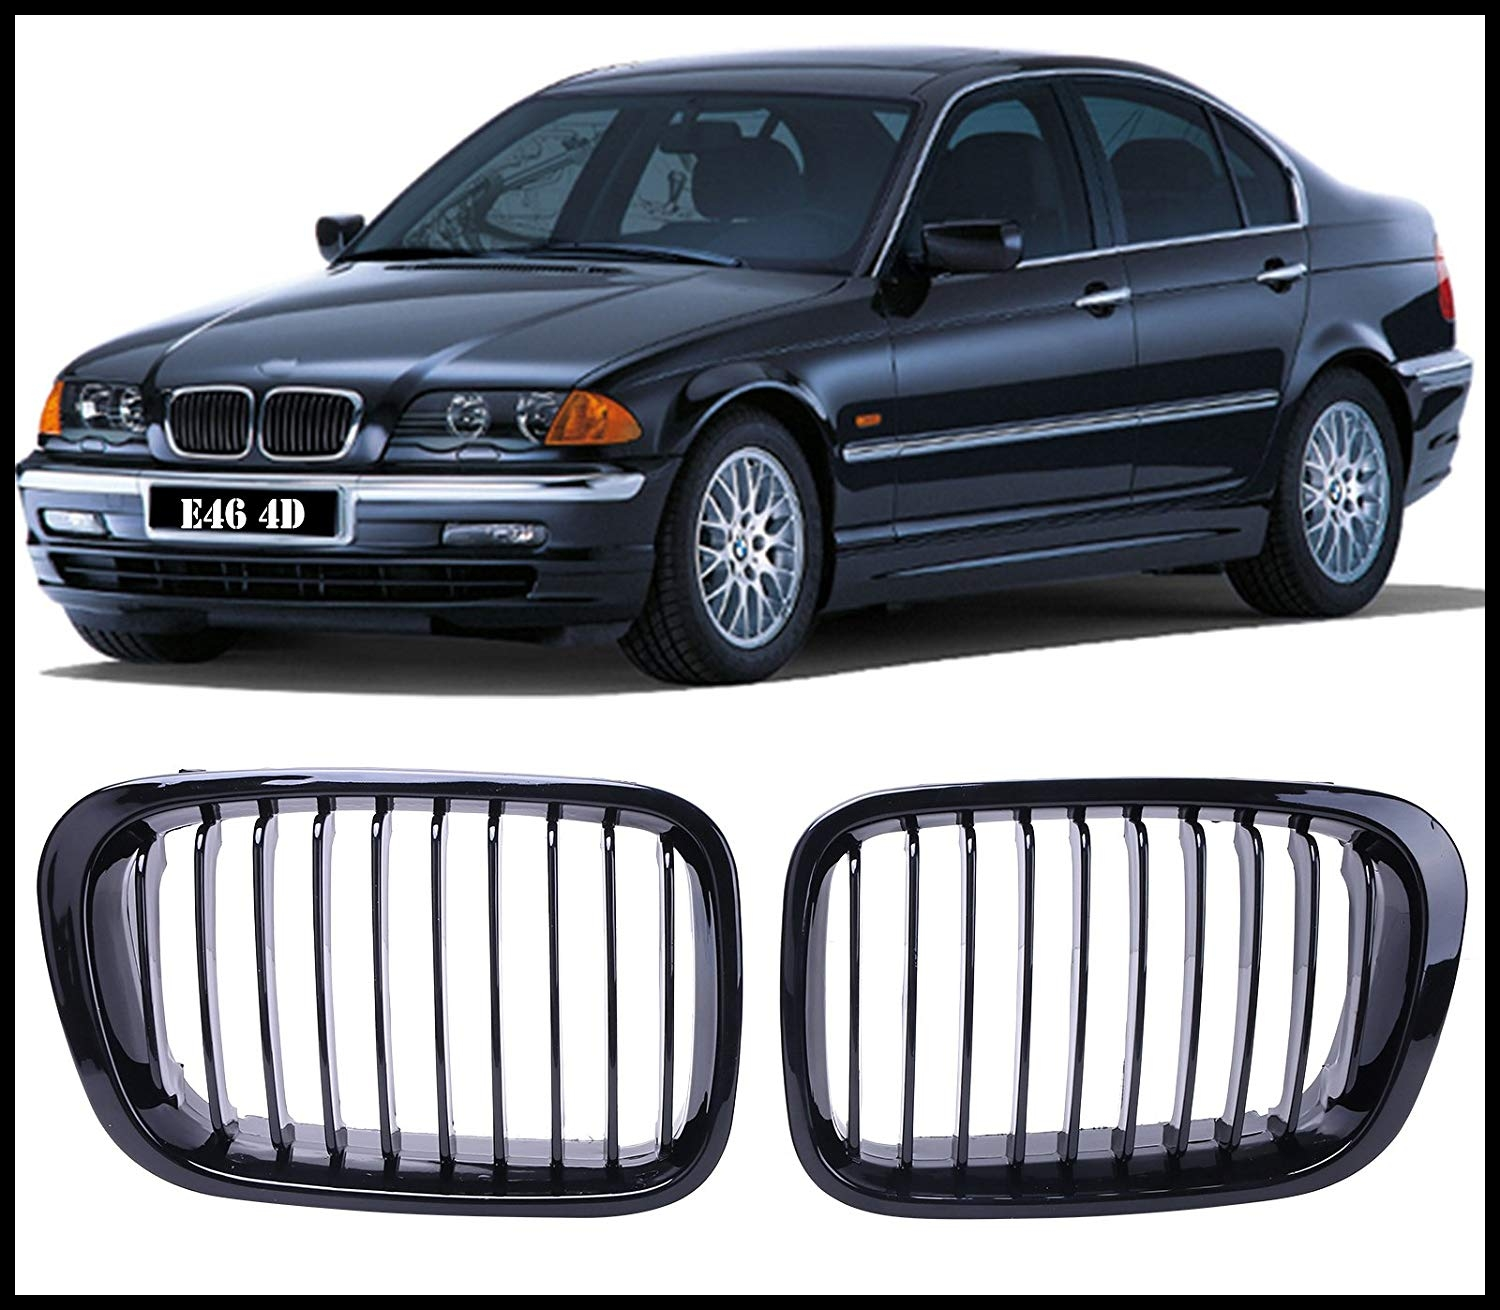 Front Grill Grille Hood Nose For E46 Sedan 4DR 1998 2001 Amazon Car & Motorbike